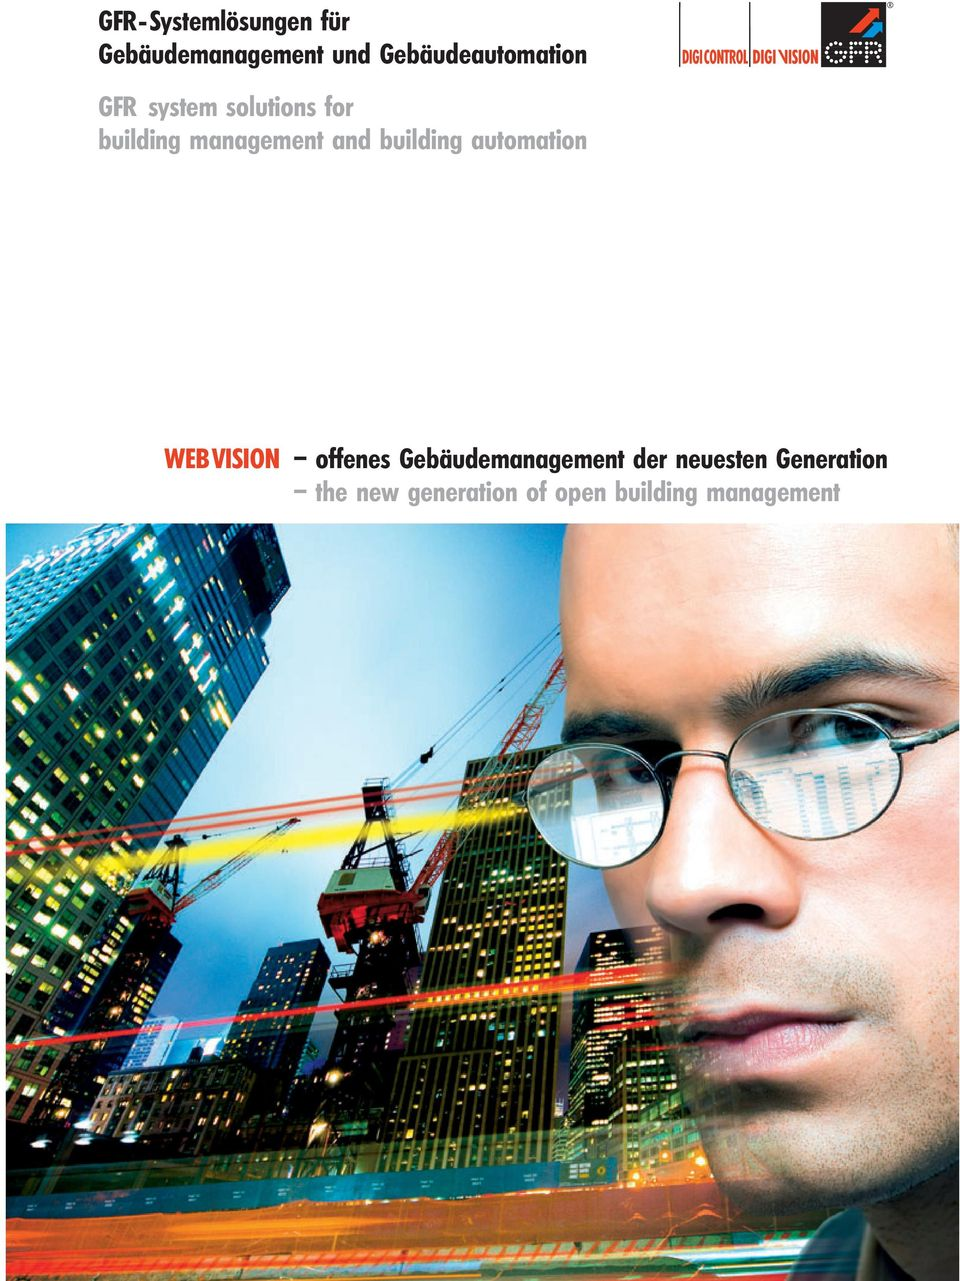 management and building automation WEBVISION offenes